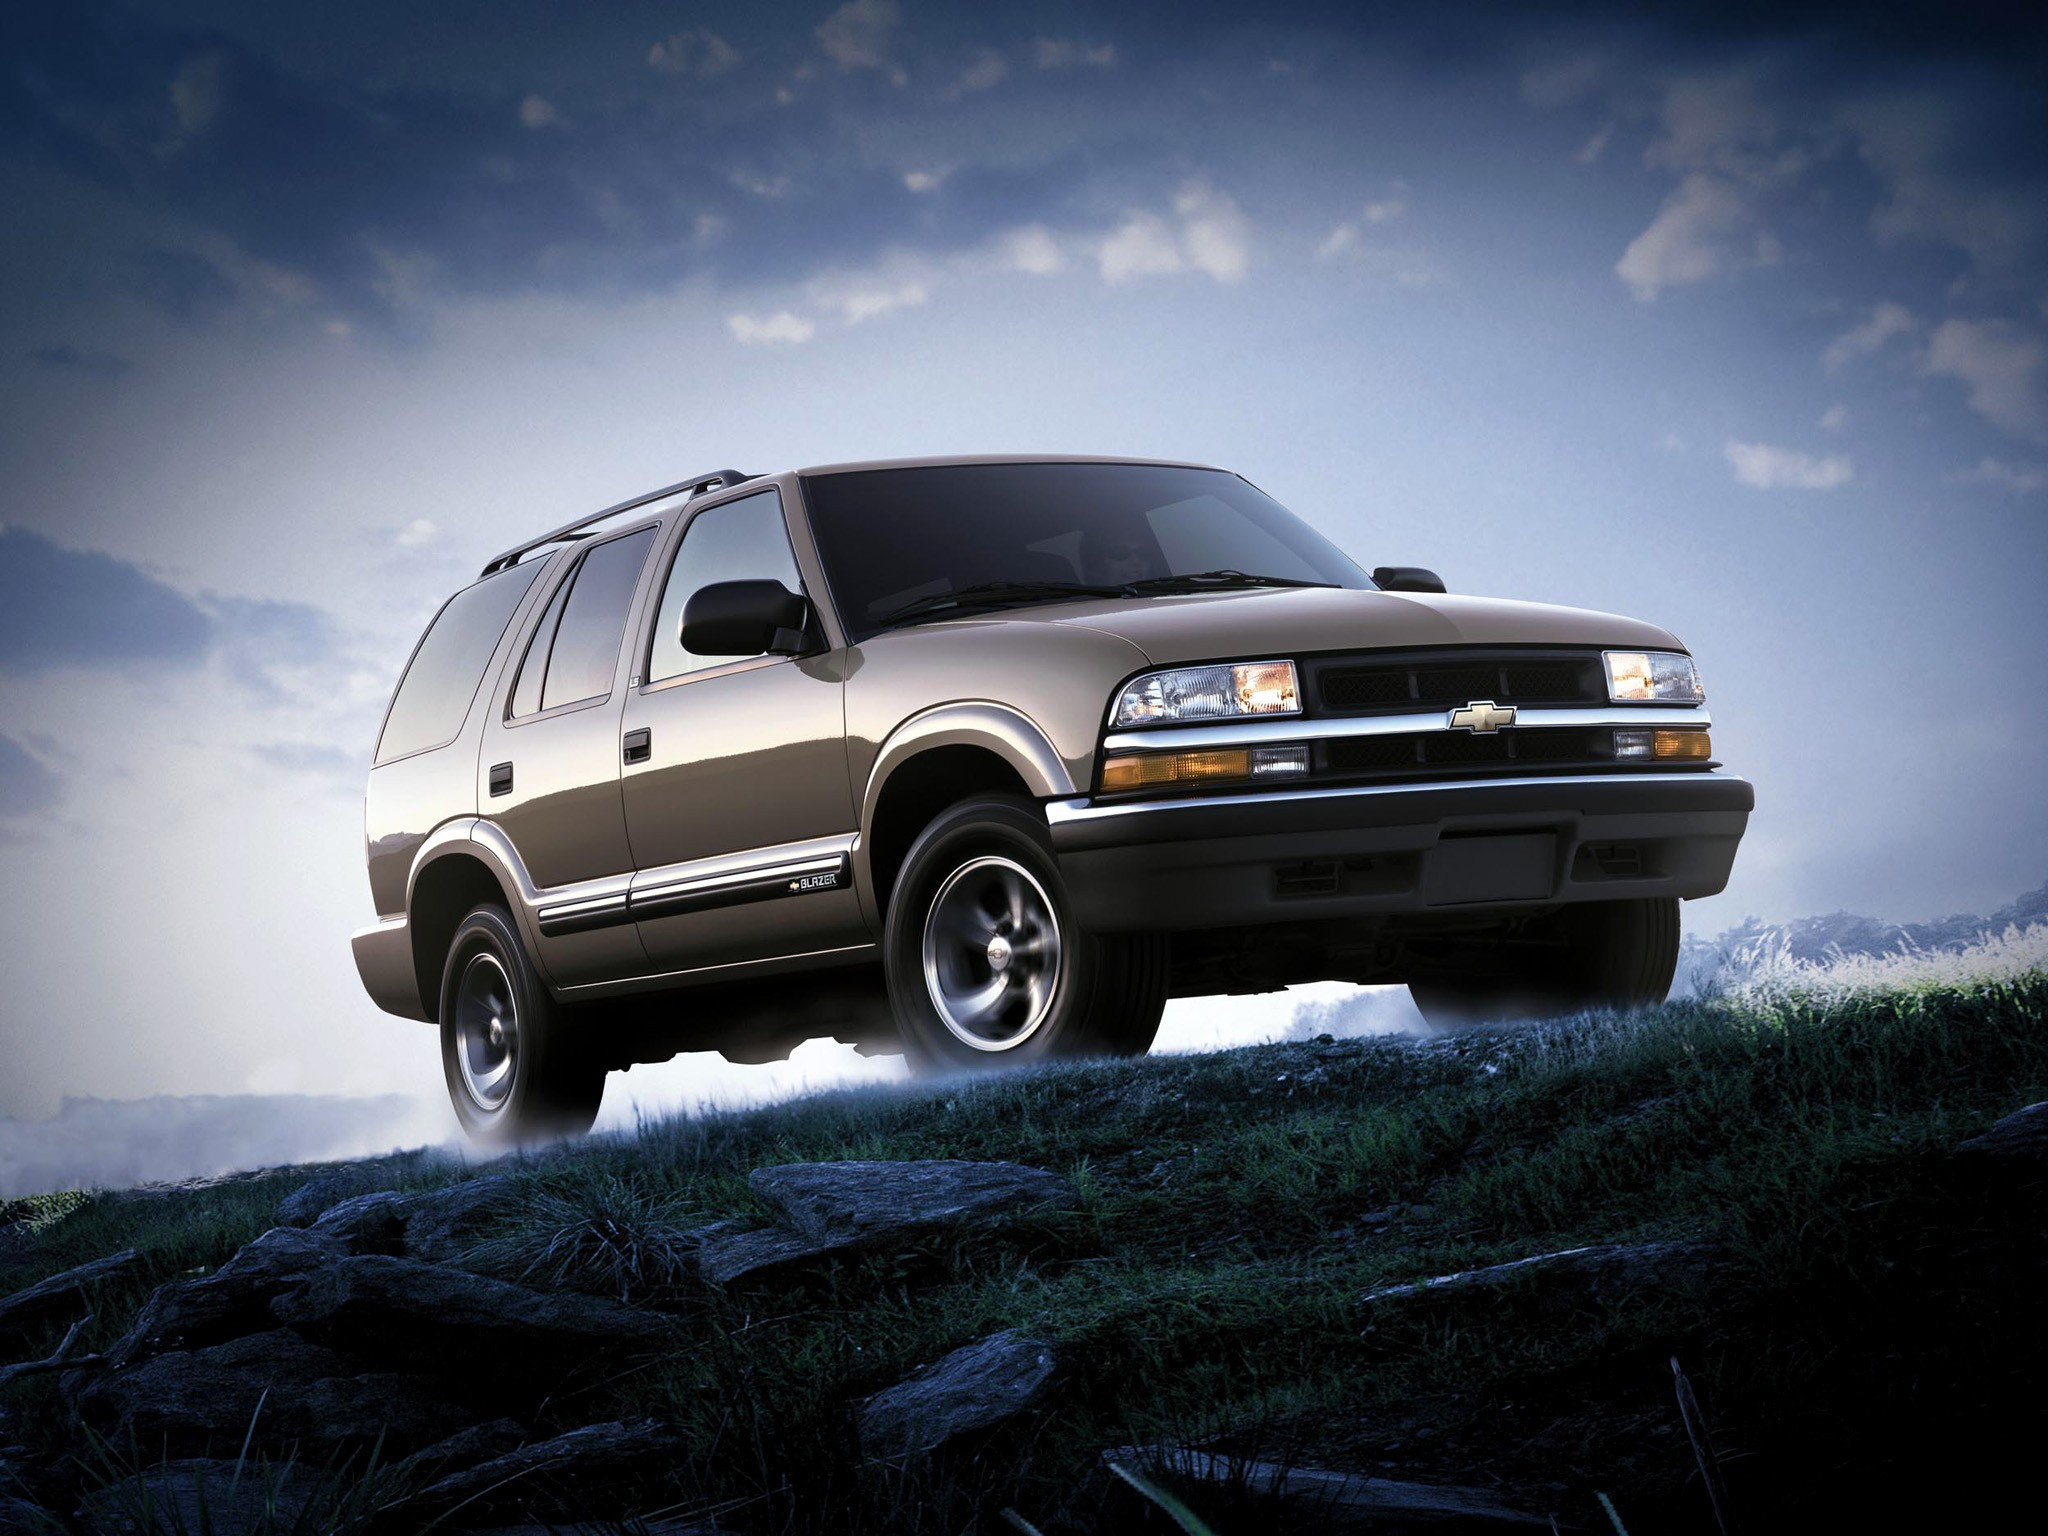 CHEVROLET Blazer 5 doors specs & photos - 1995, 1996, 1997 ...